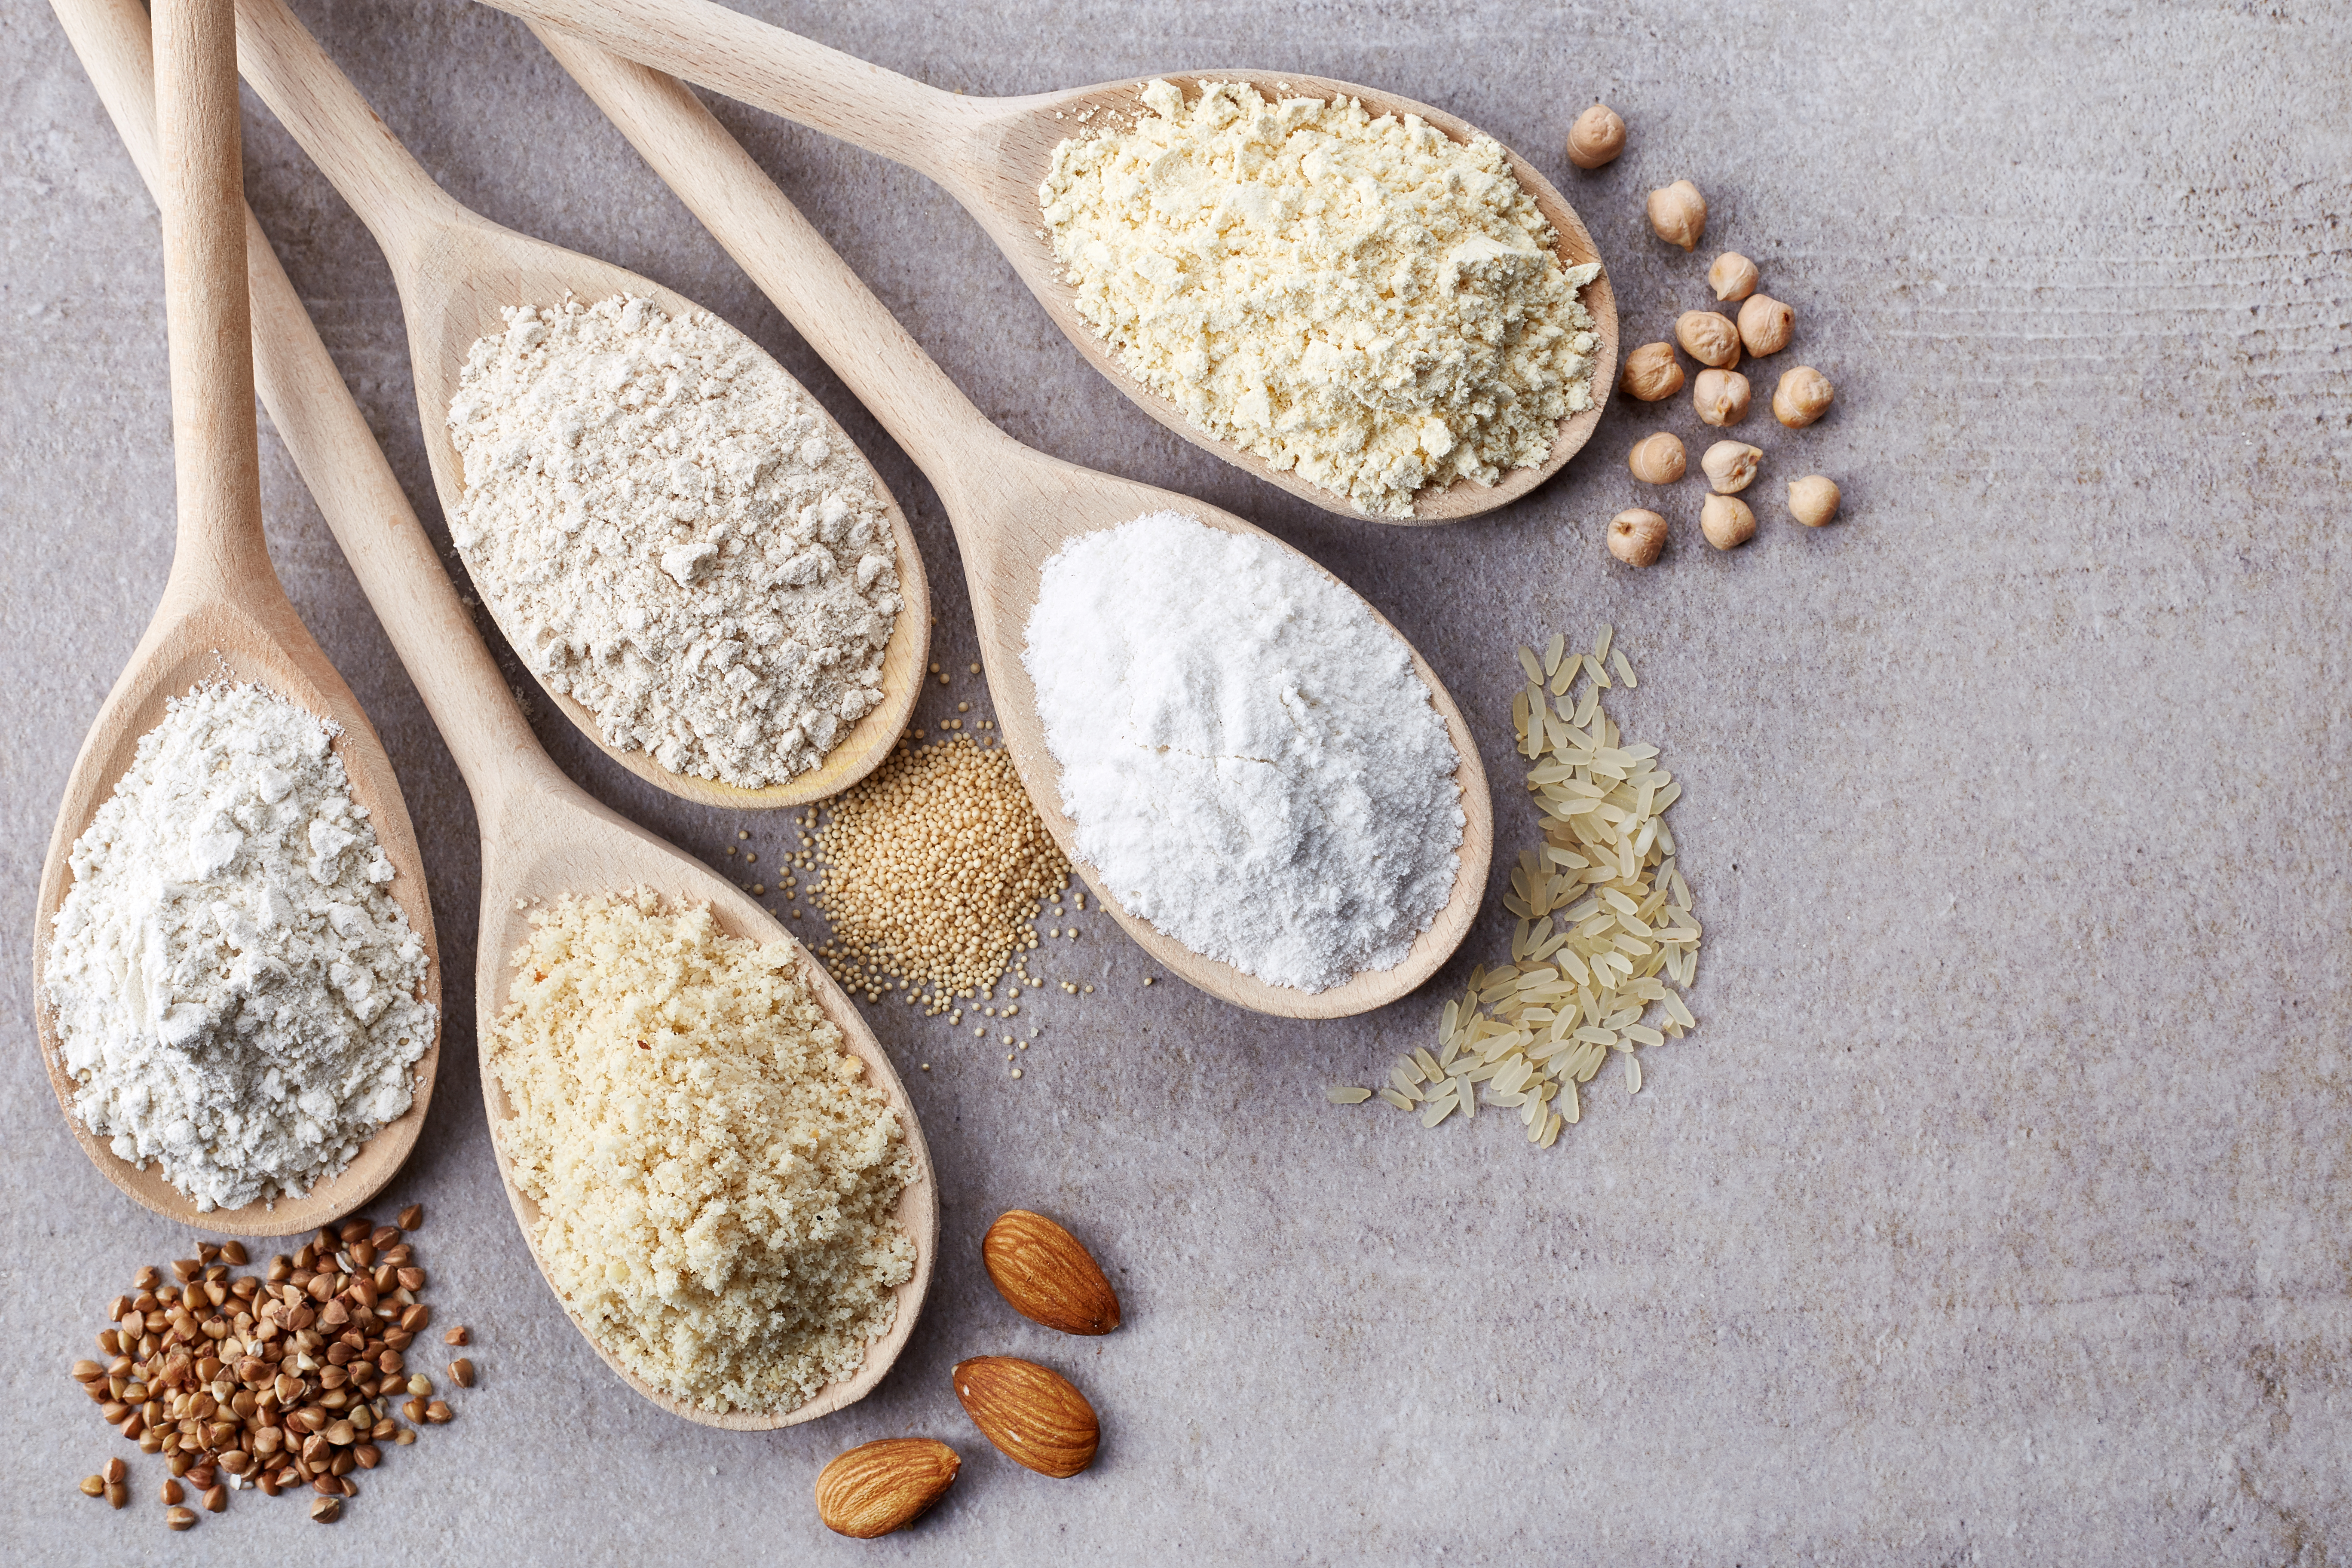 What Are the Benefits of Blanched Almond Flour? | Healthy